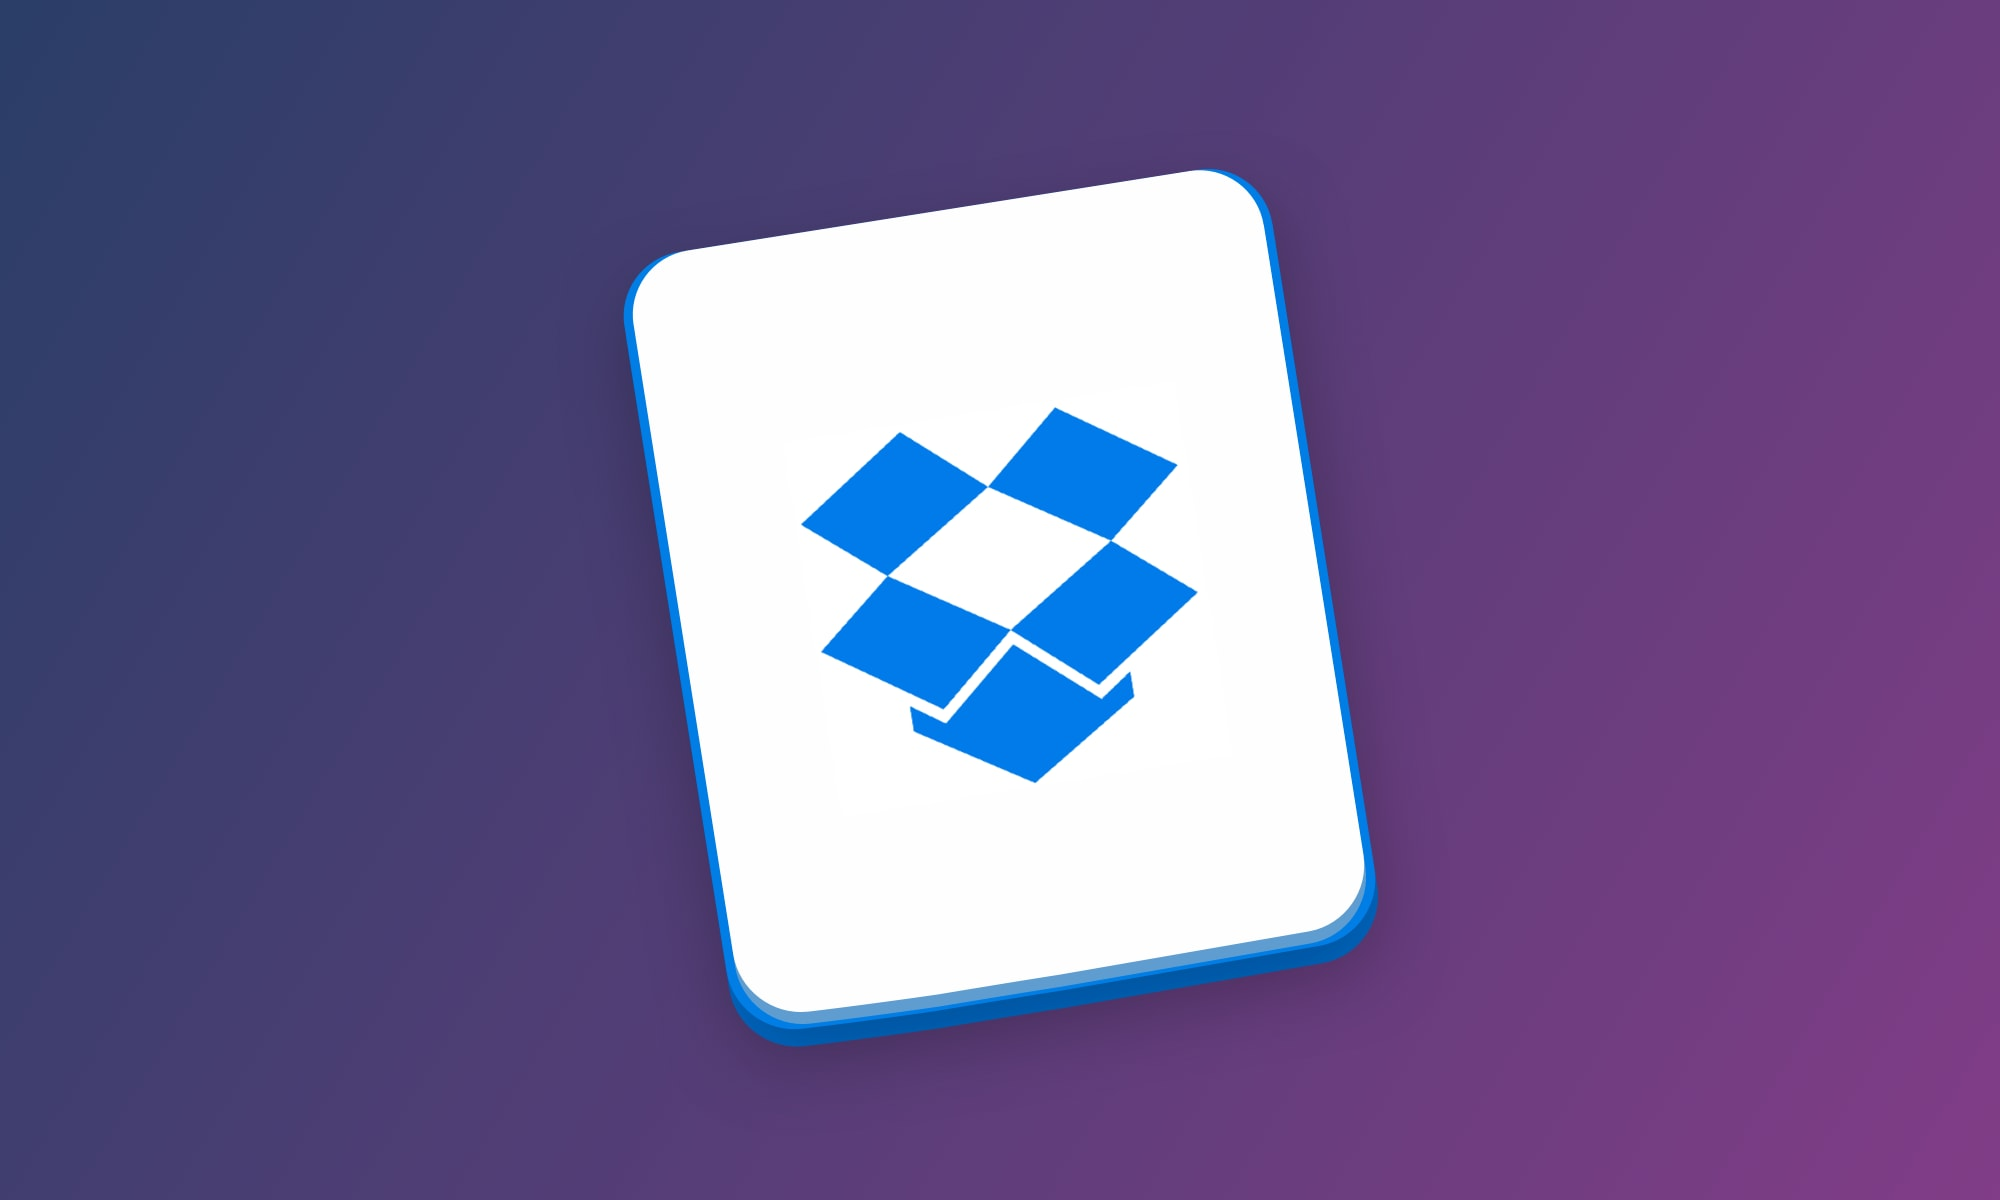 Dropbox Paper for Mac (Unofficial) varies-with-device